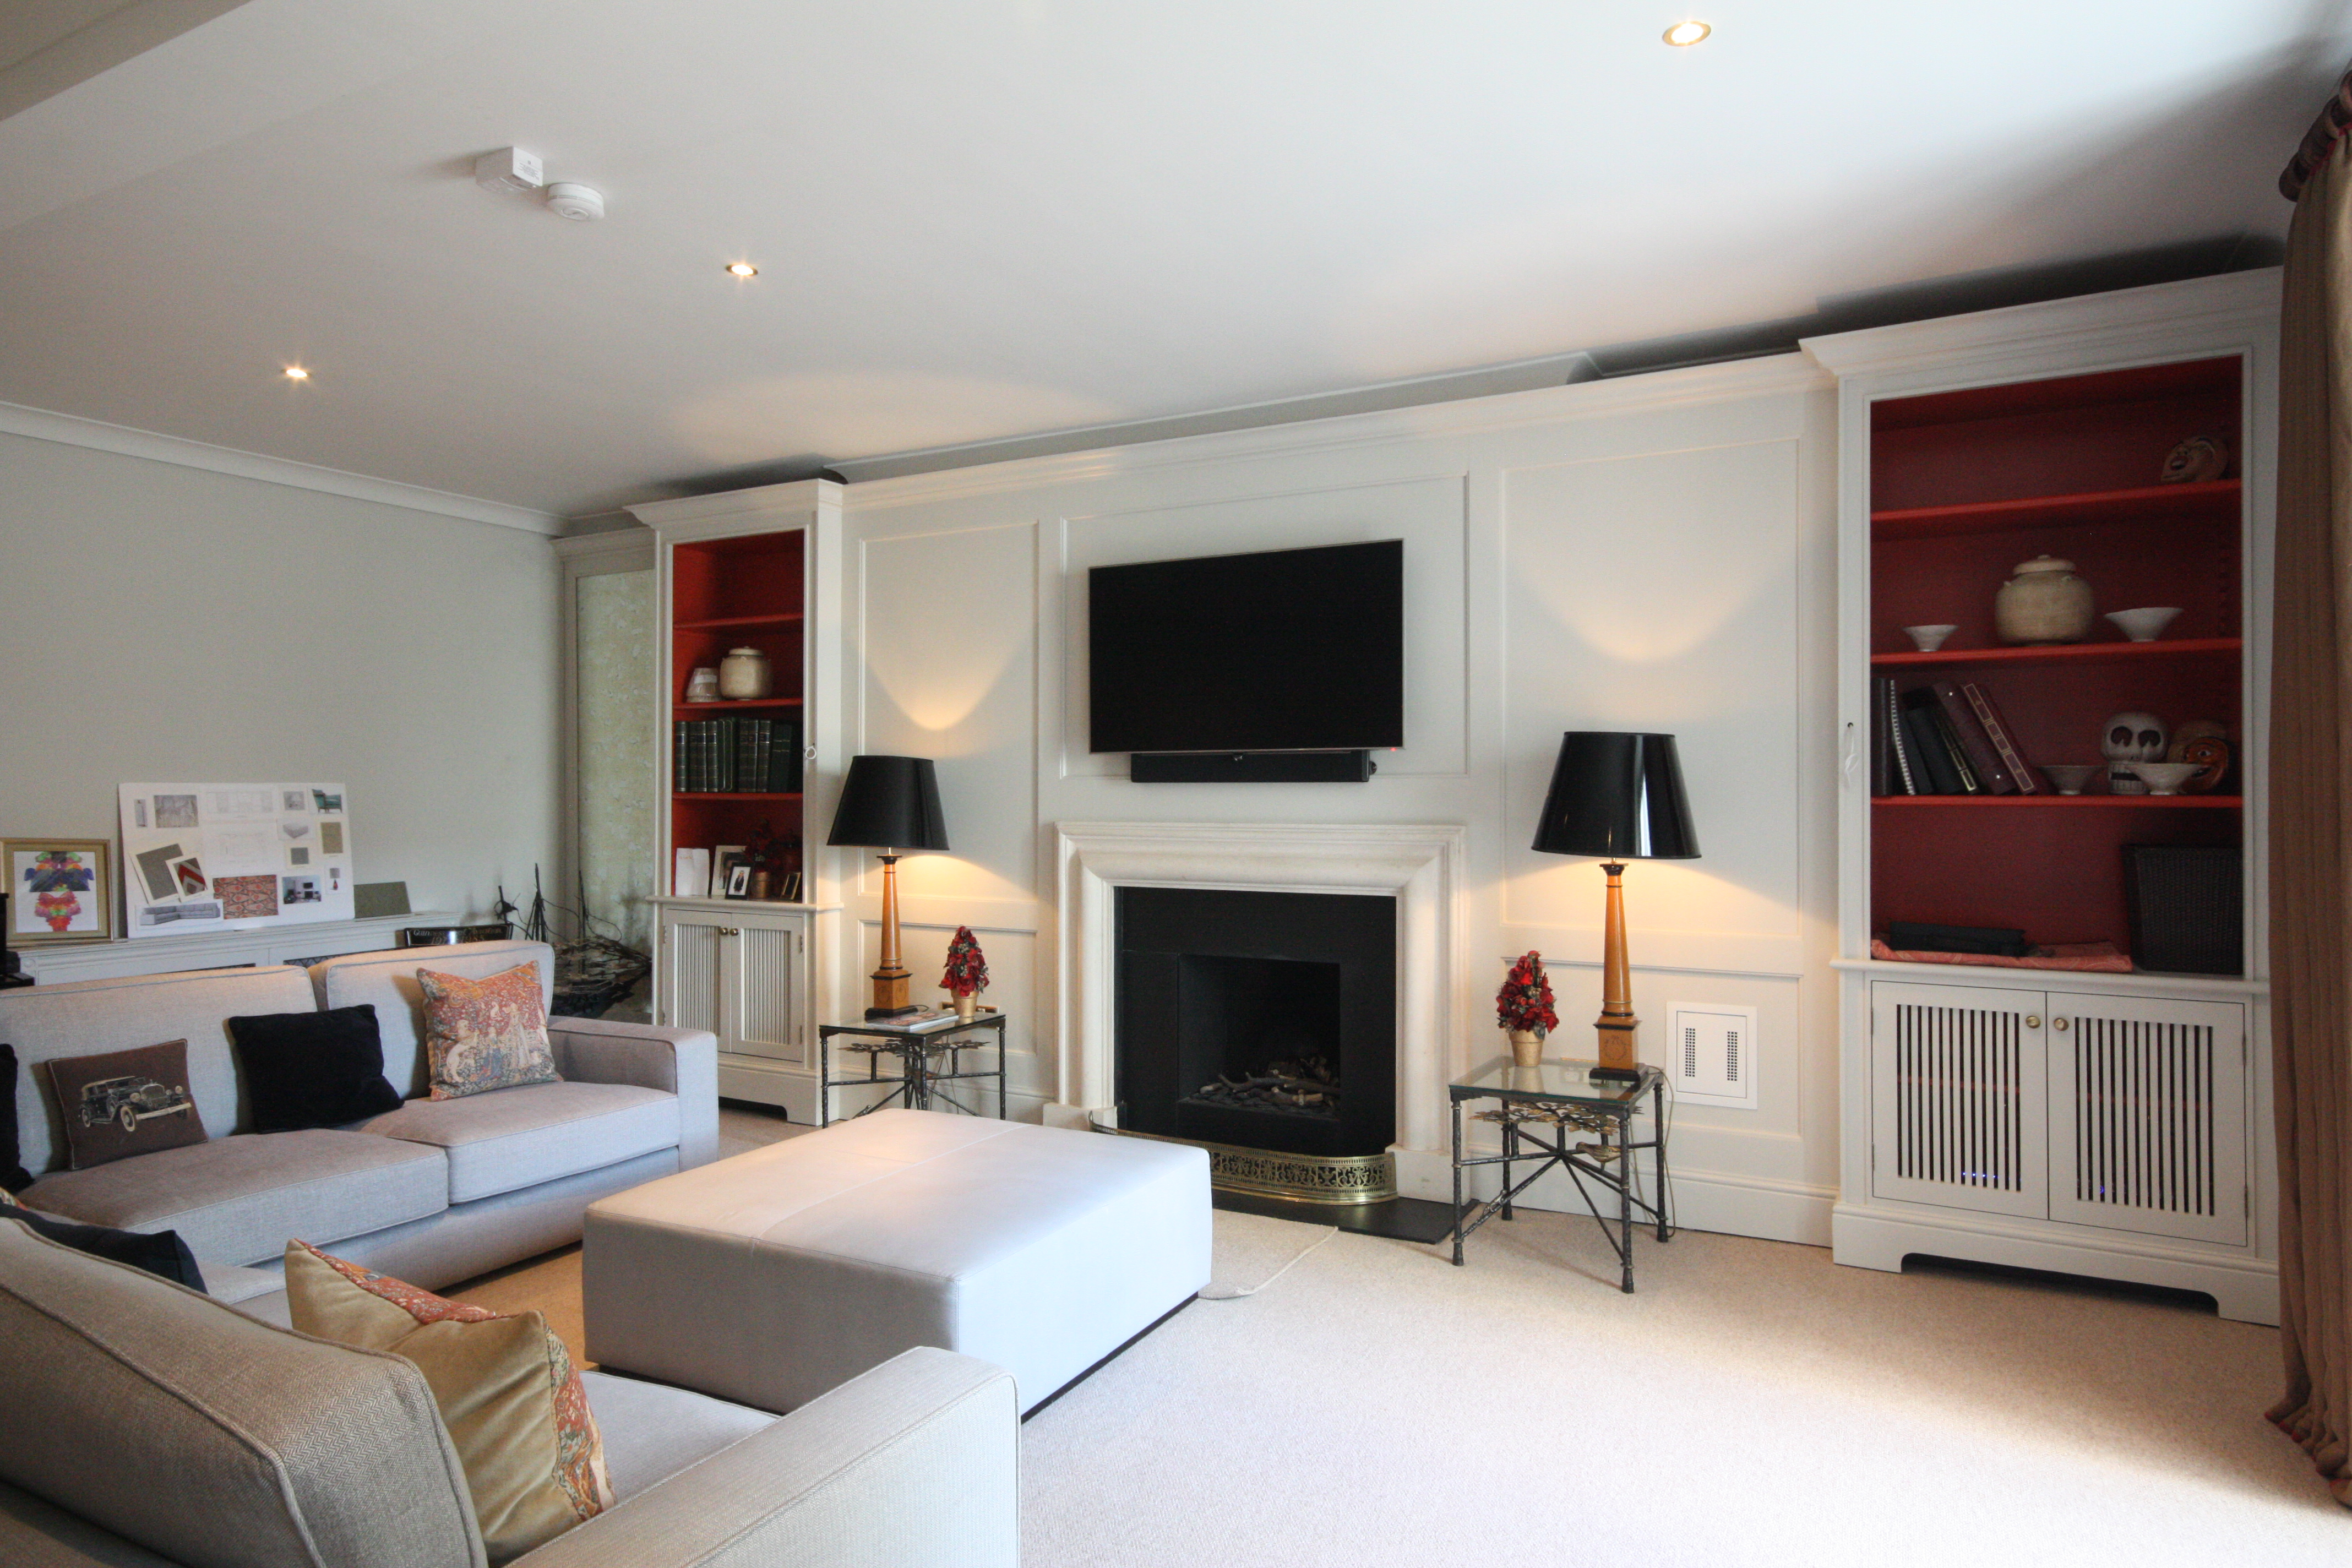 Bespoke_wall_panelling_bookcases_mirror_TV_unit_enigma_design